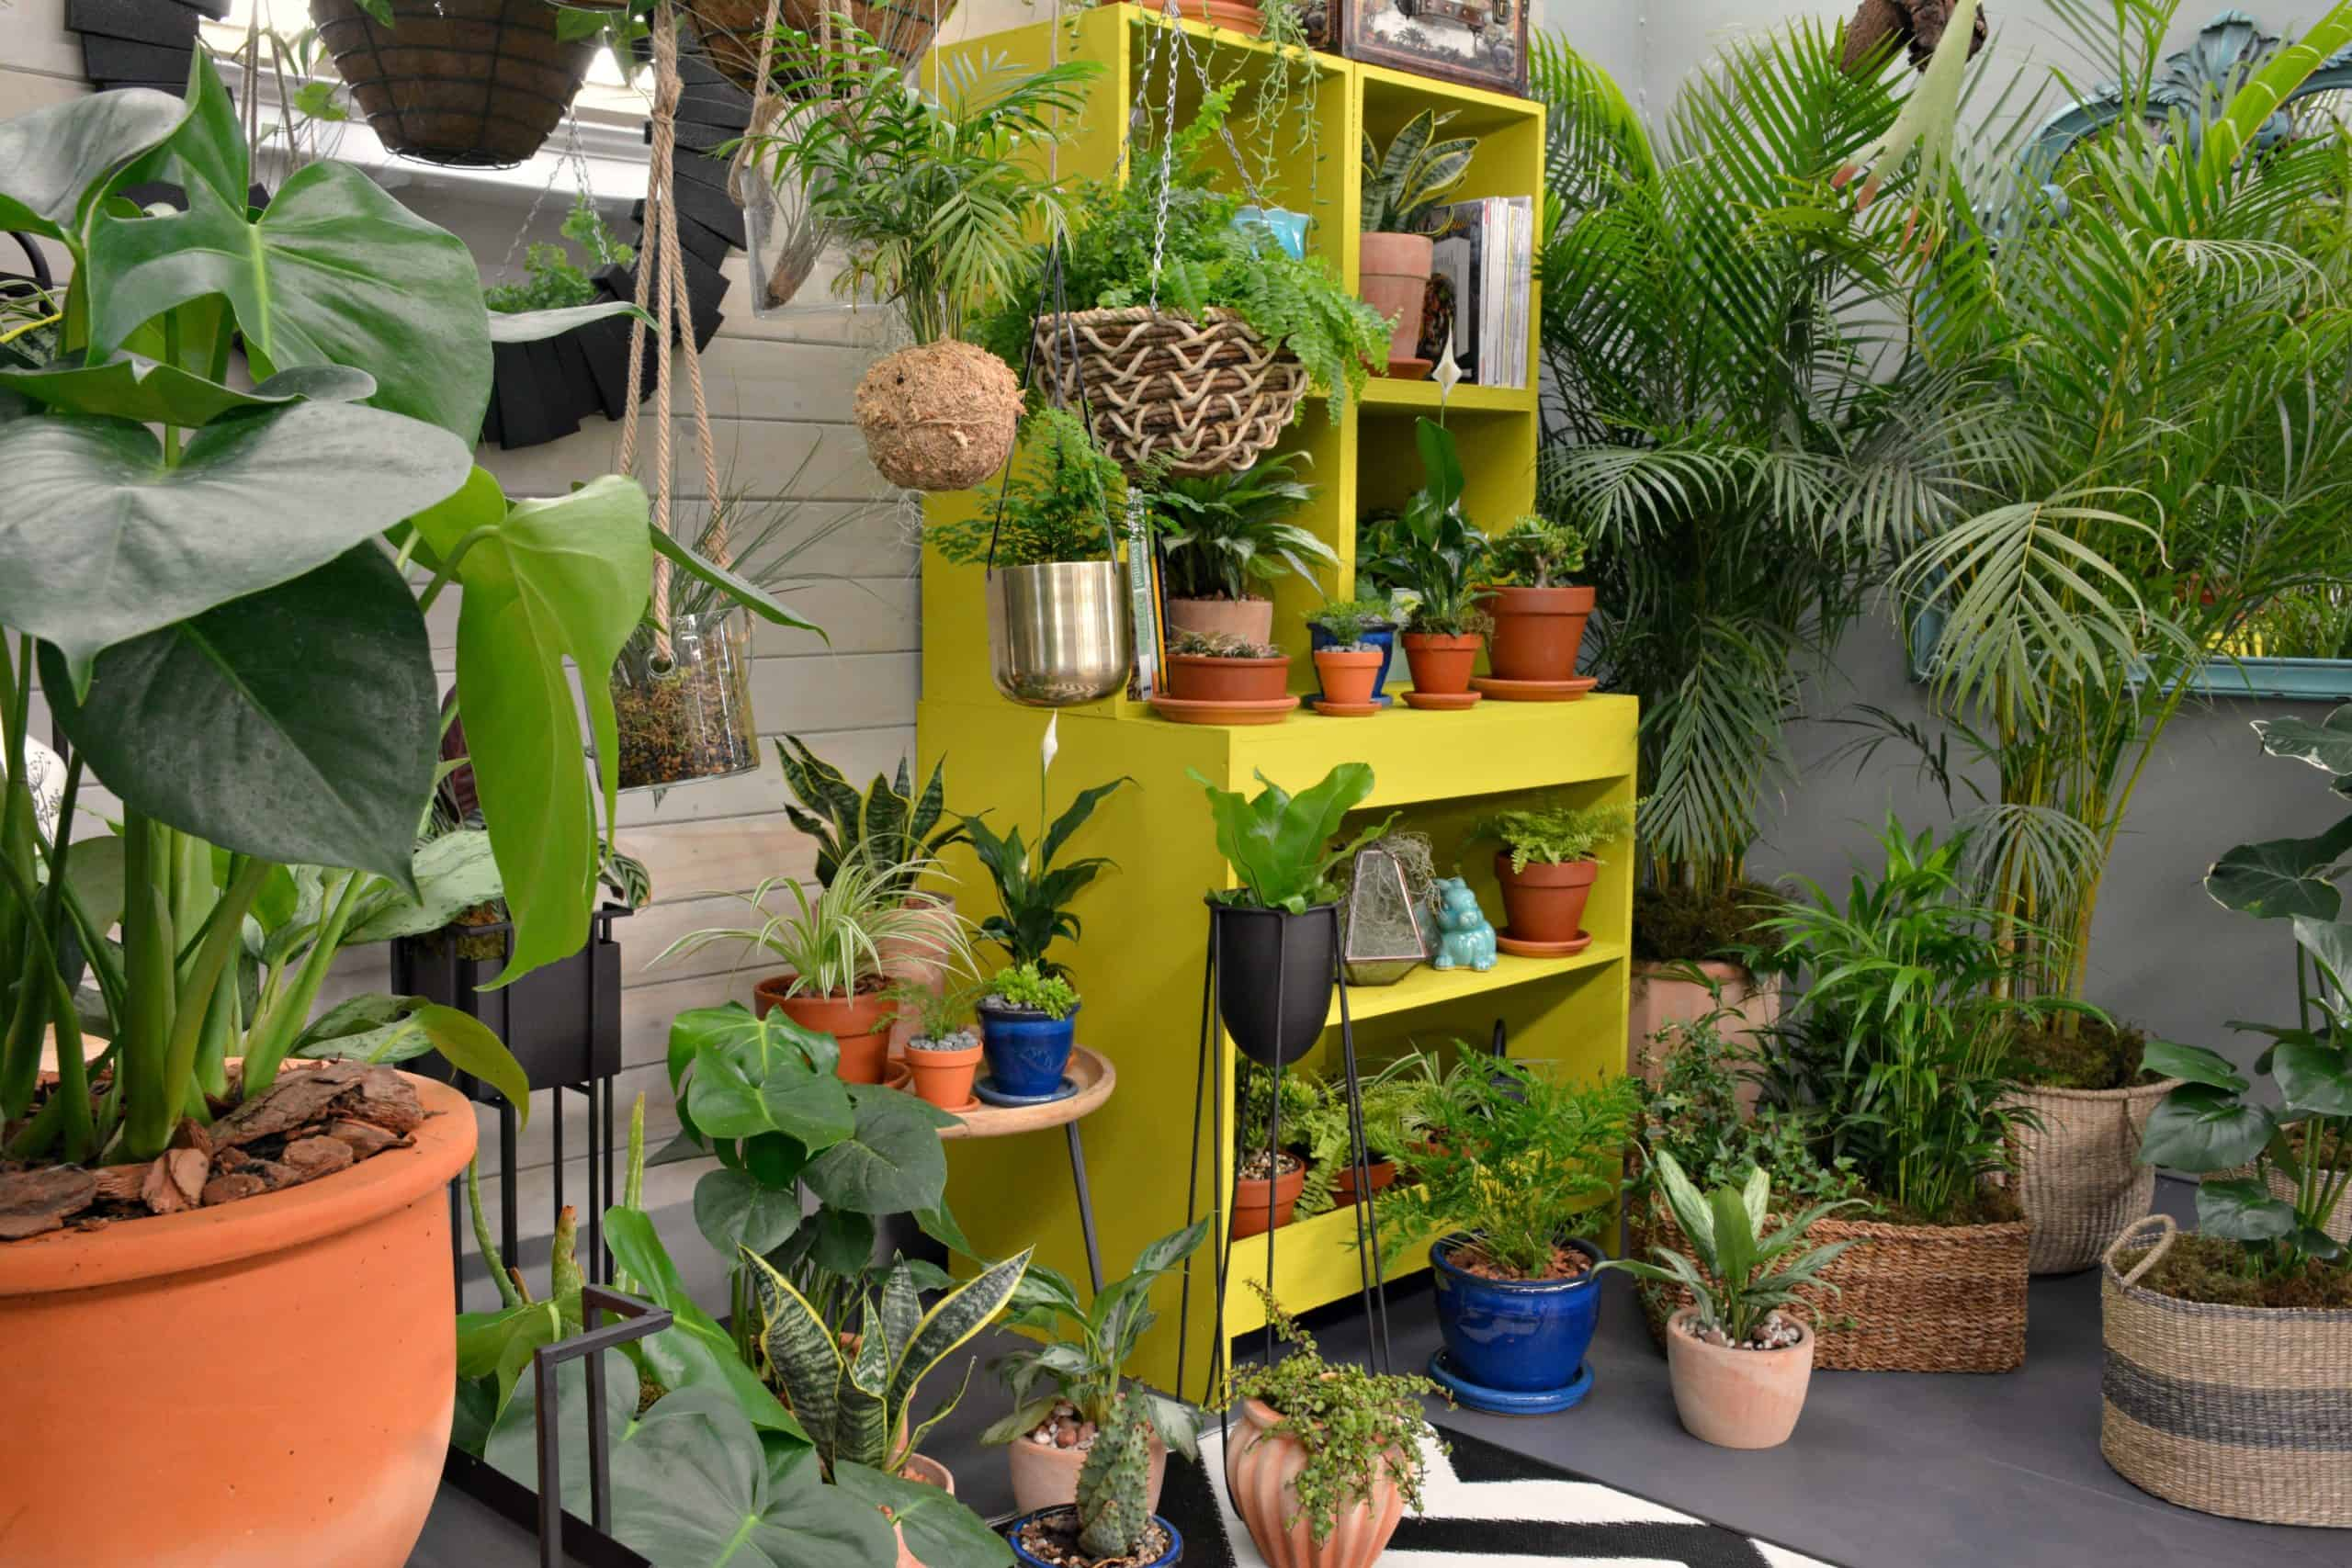 Discover Your Wild. Decorating with indoor plants